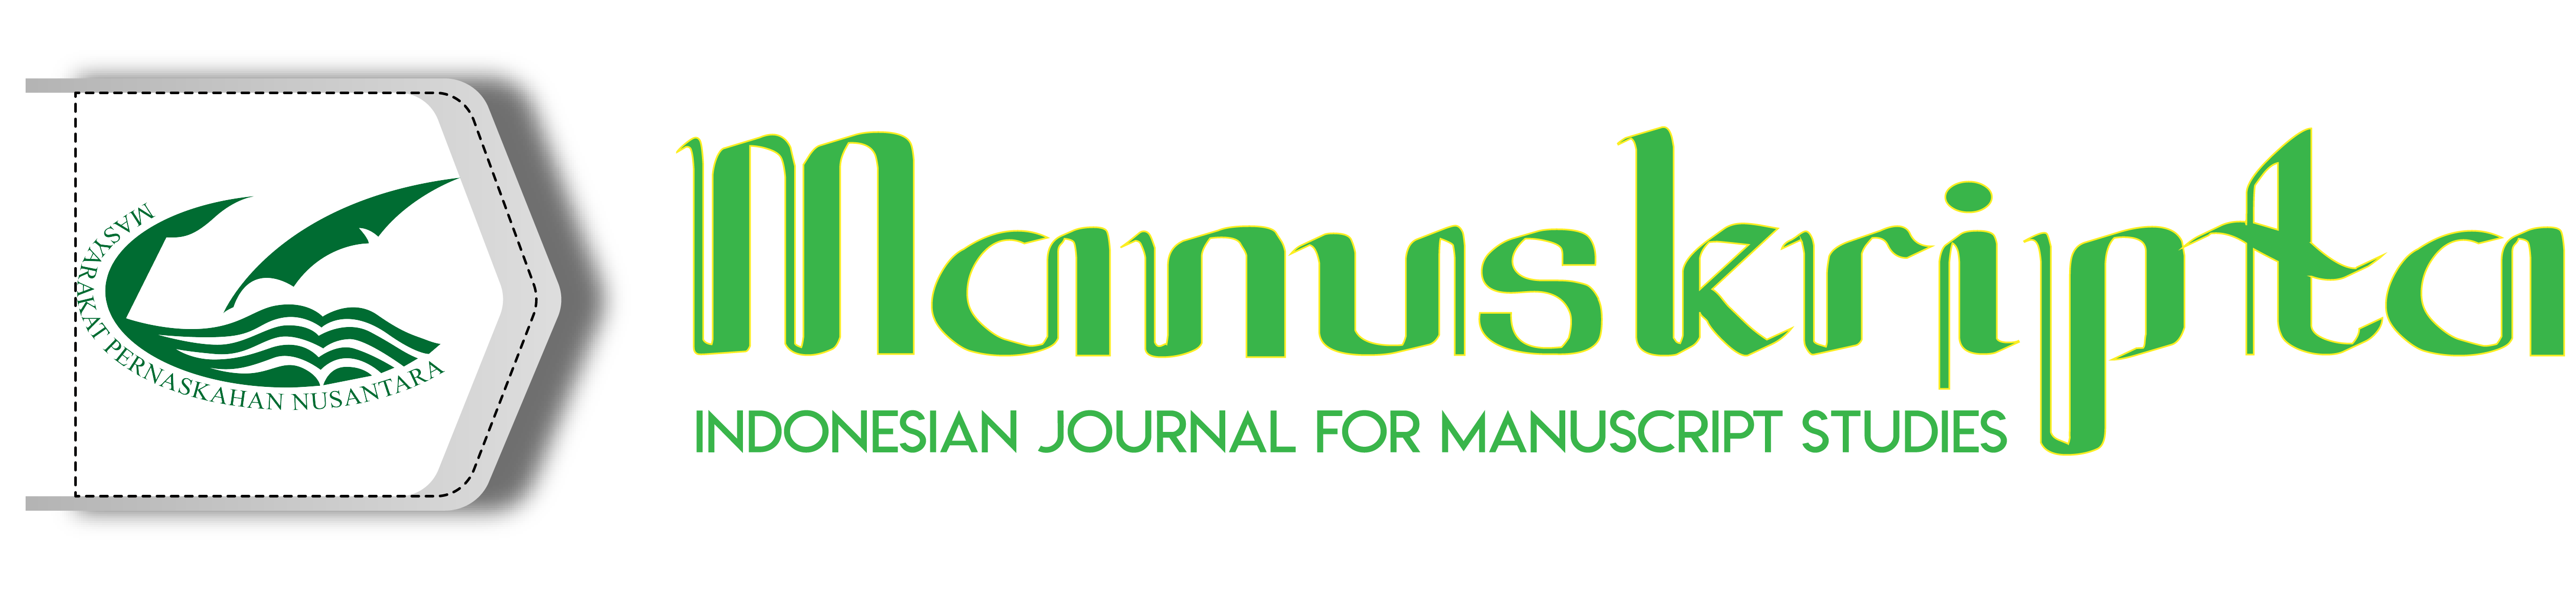 Indonesian Journal for Manuscript Studies